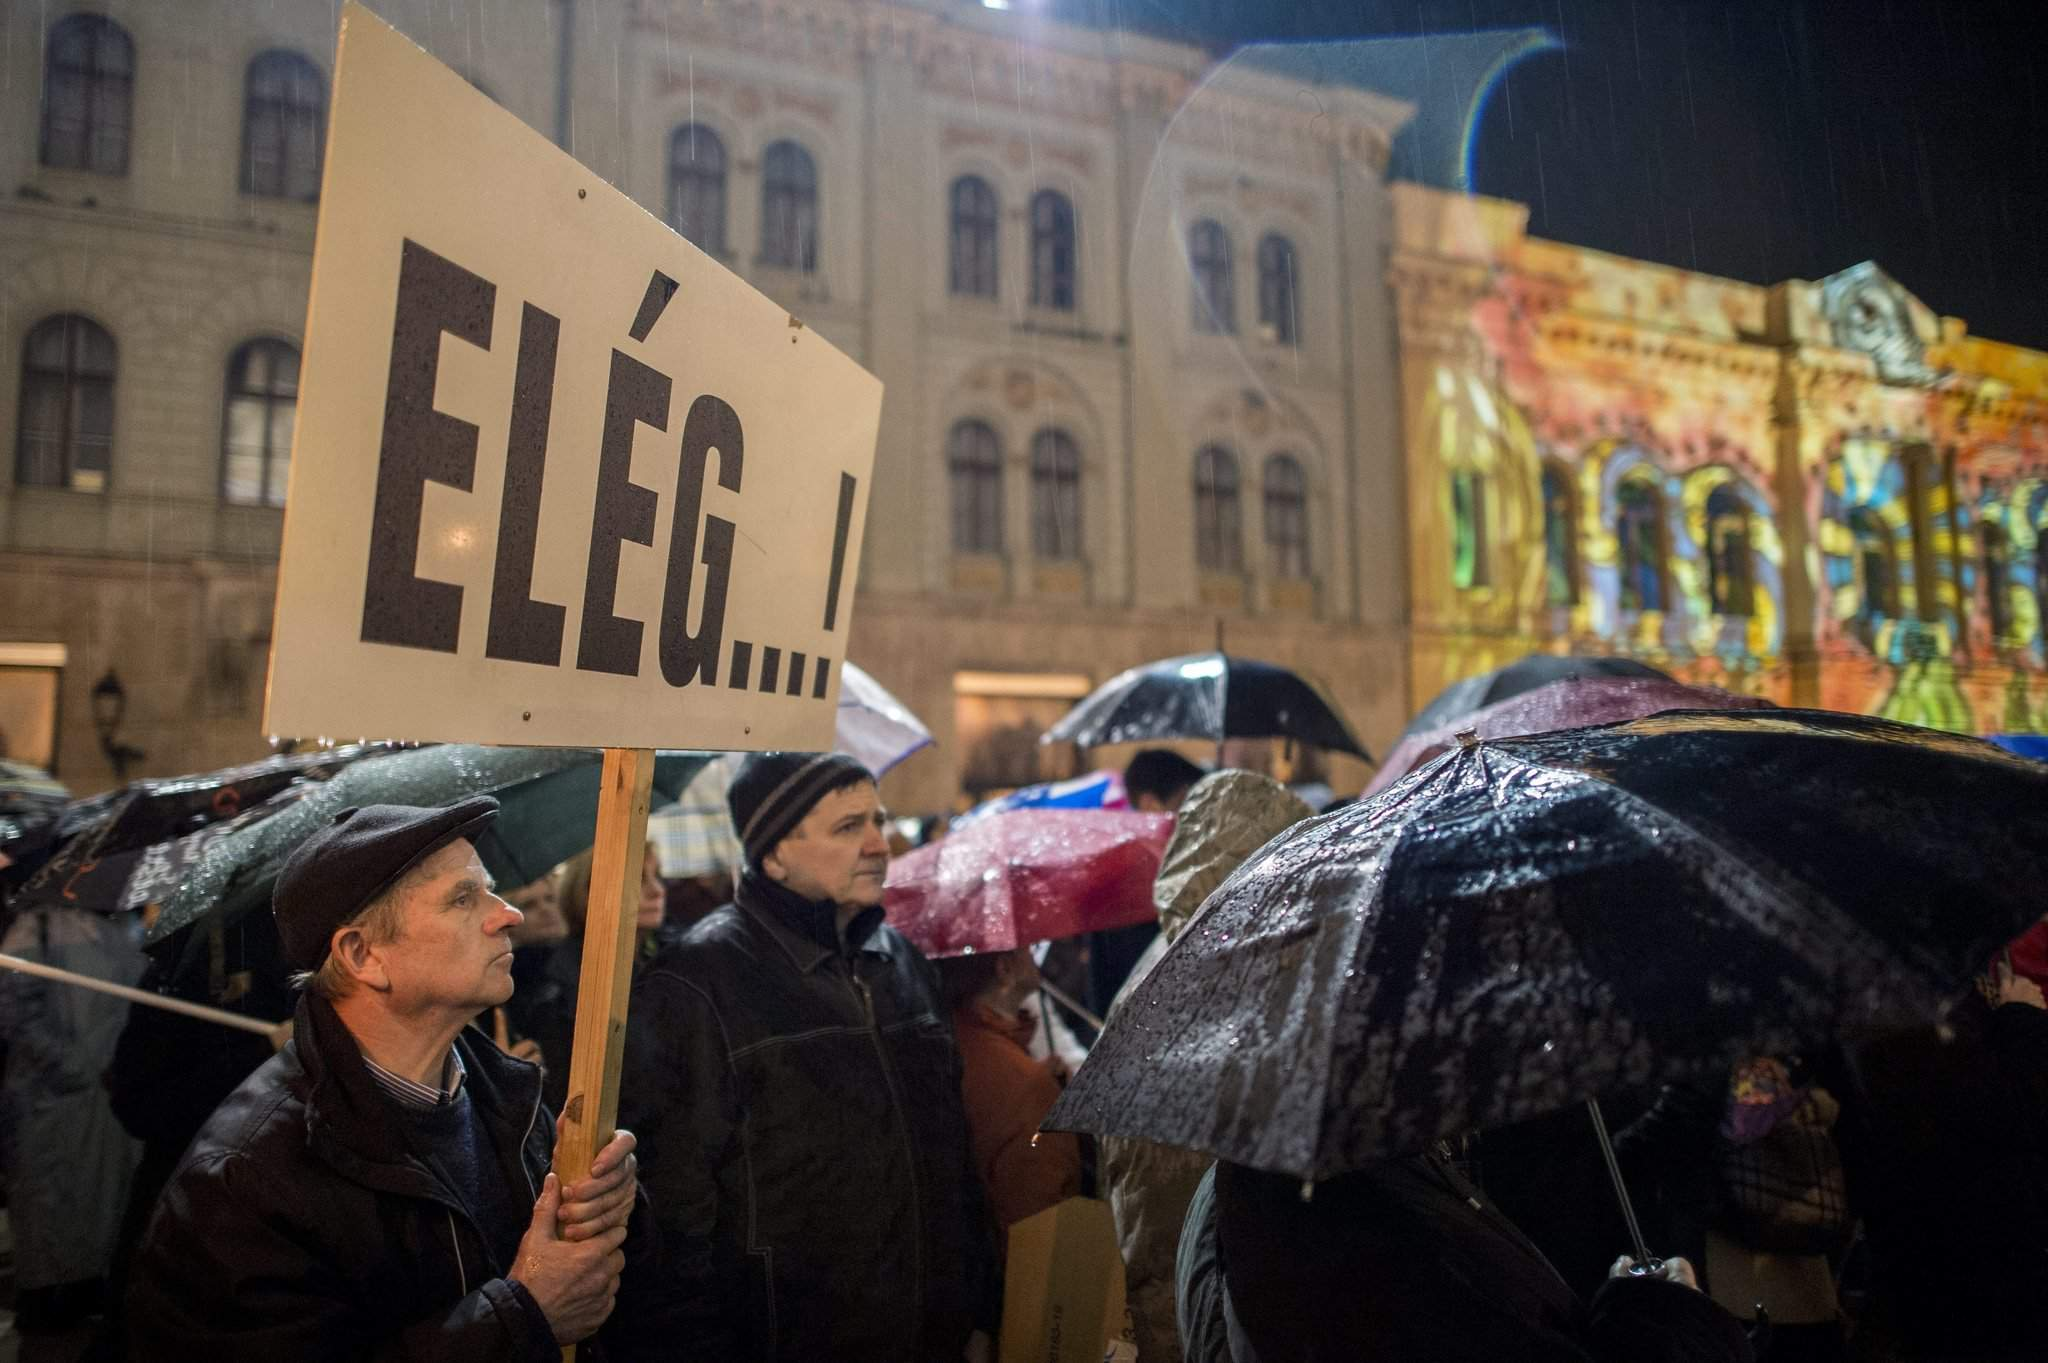 Teachers demonstrate for education reform in Hungary – Photos